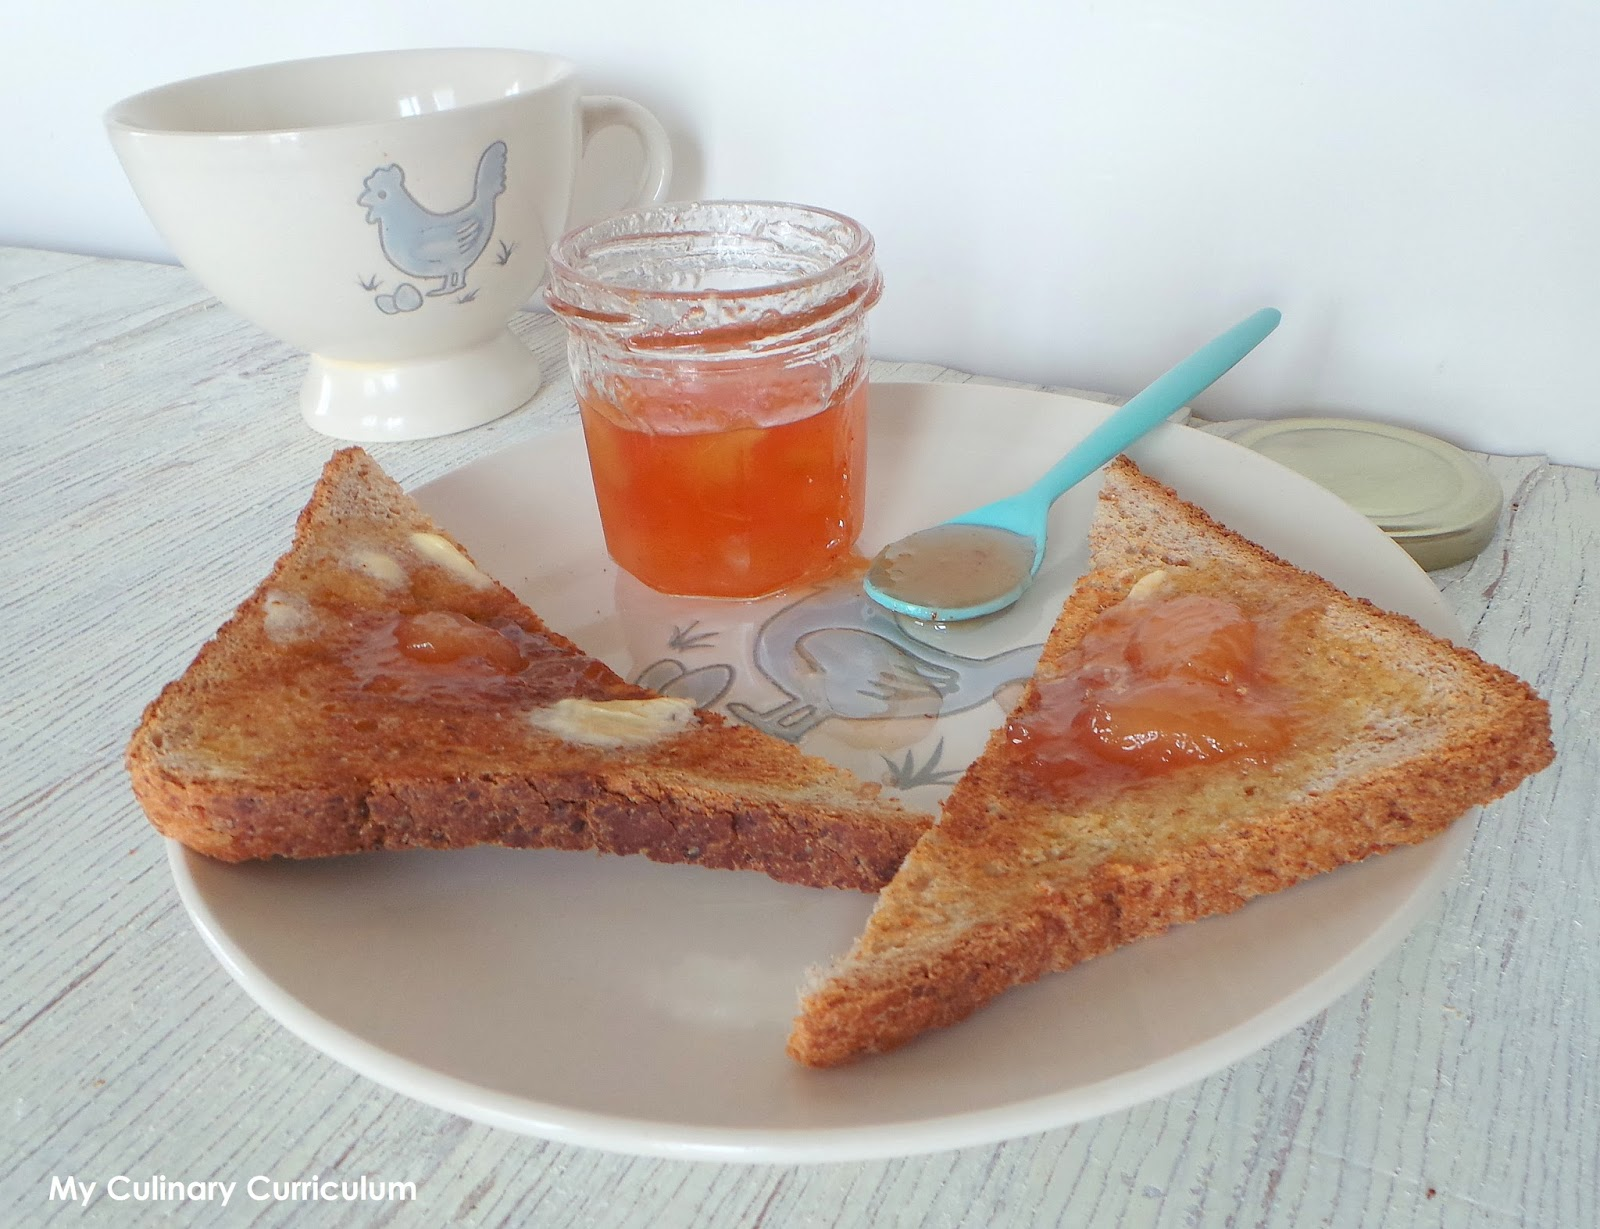 my culinary curriculum confiture de p ches blanches maison homemade peaches jam. Black Bedroom Furniture Sets. Home Design Ideas